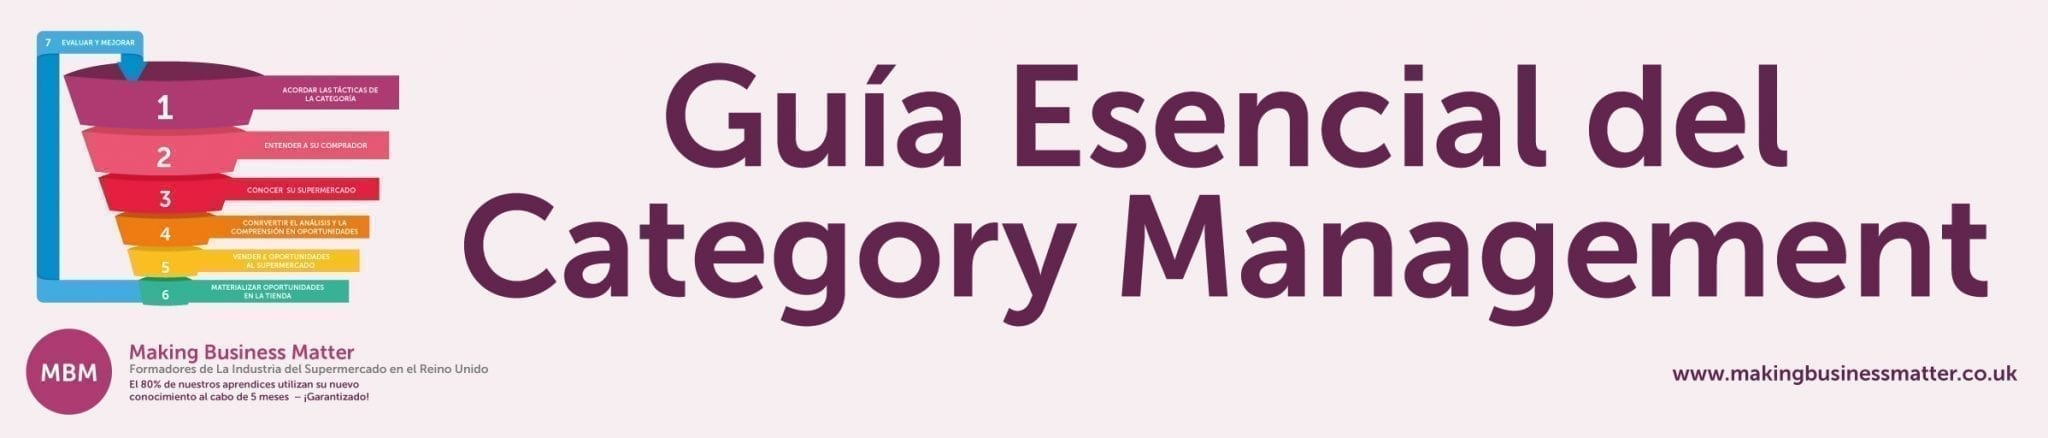 Guia Esencial del Category Management